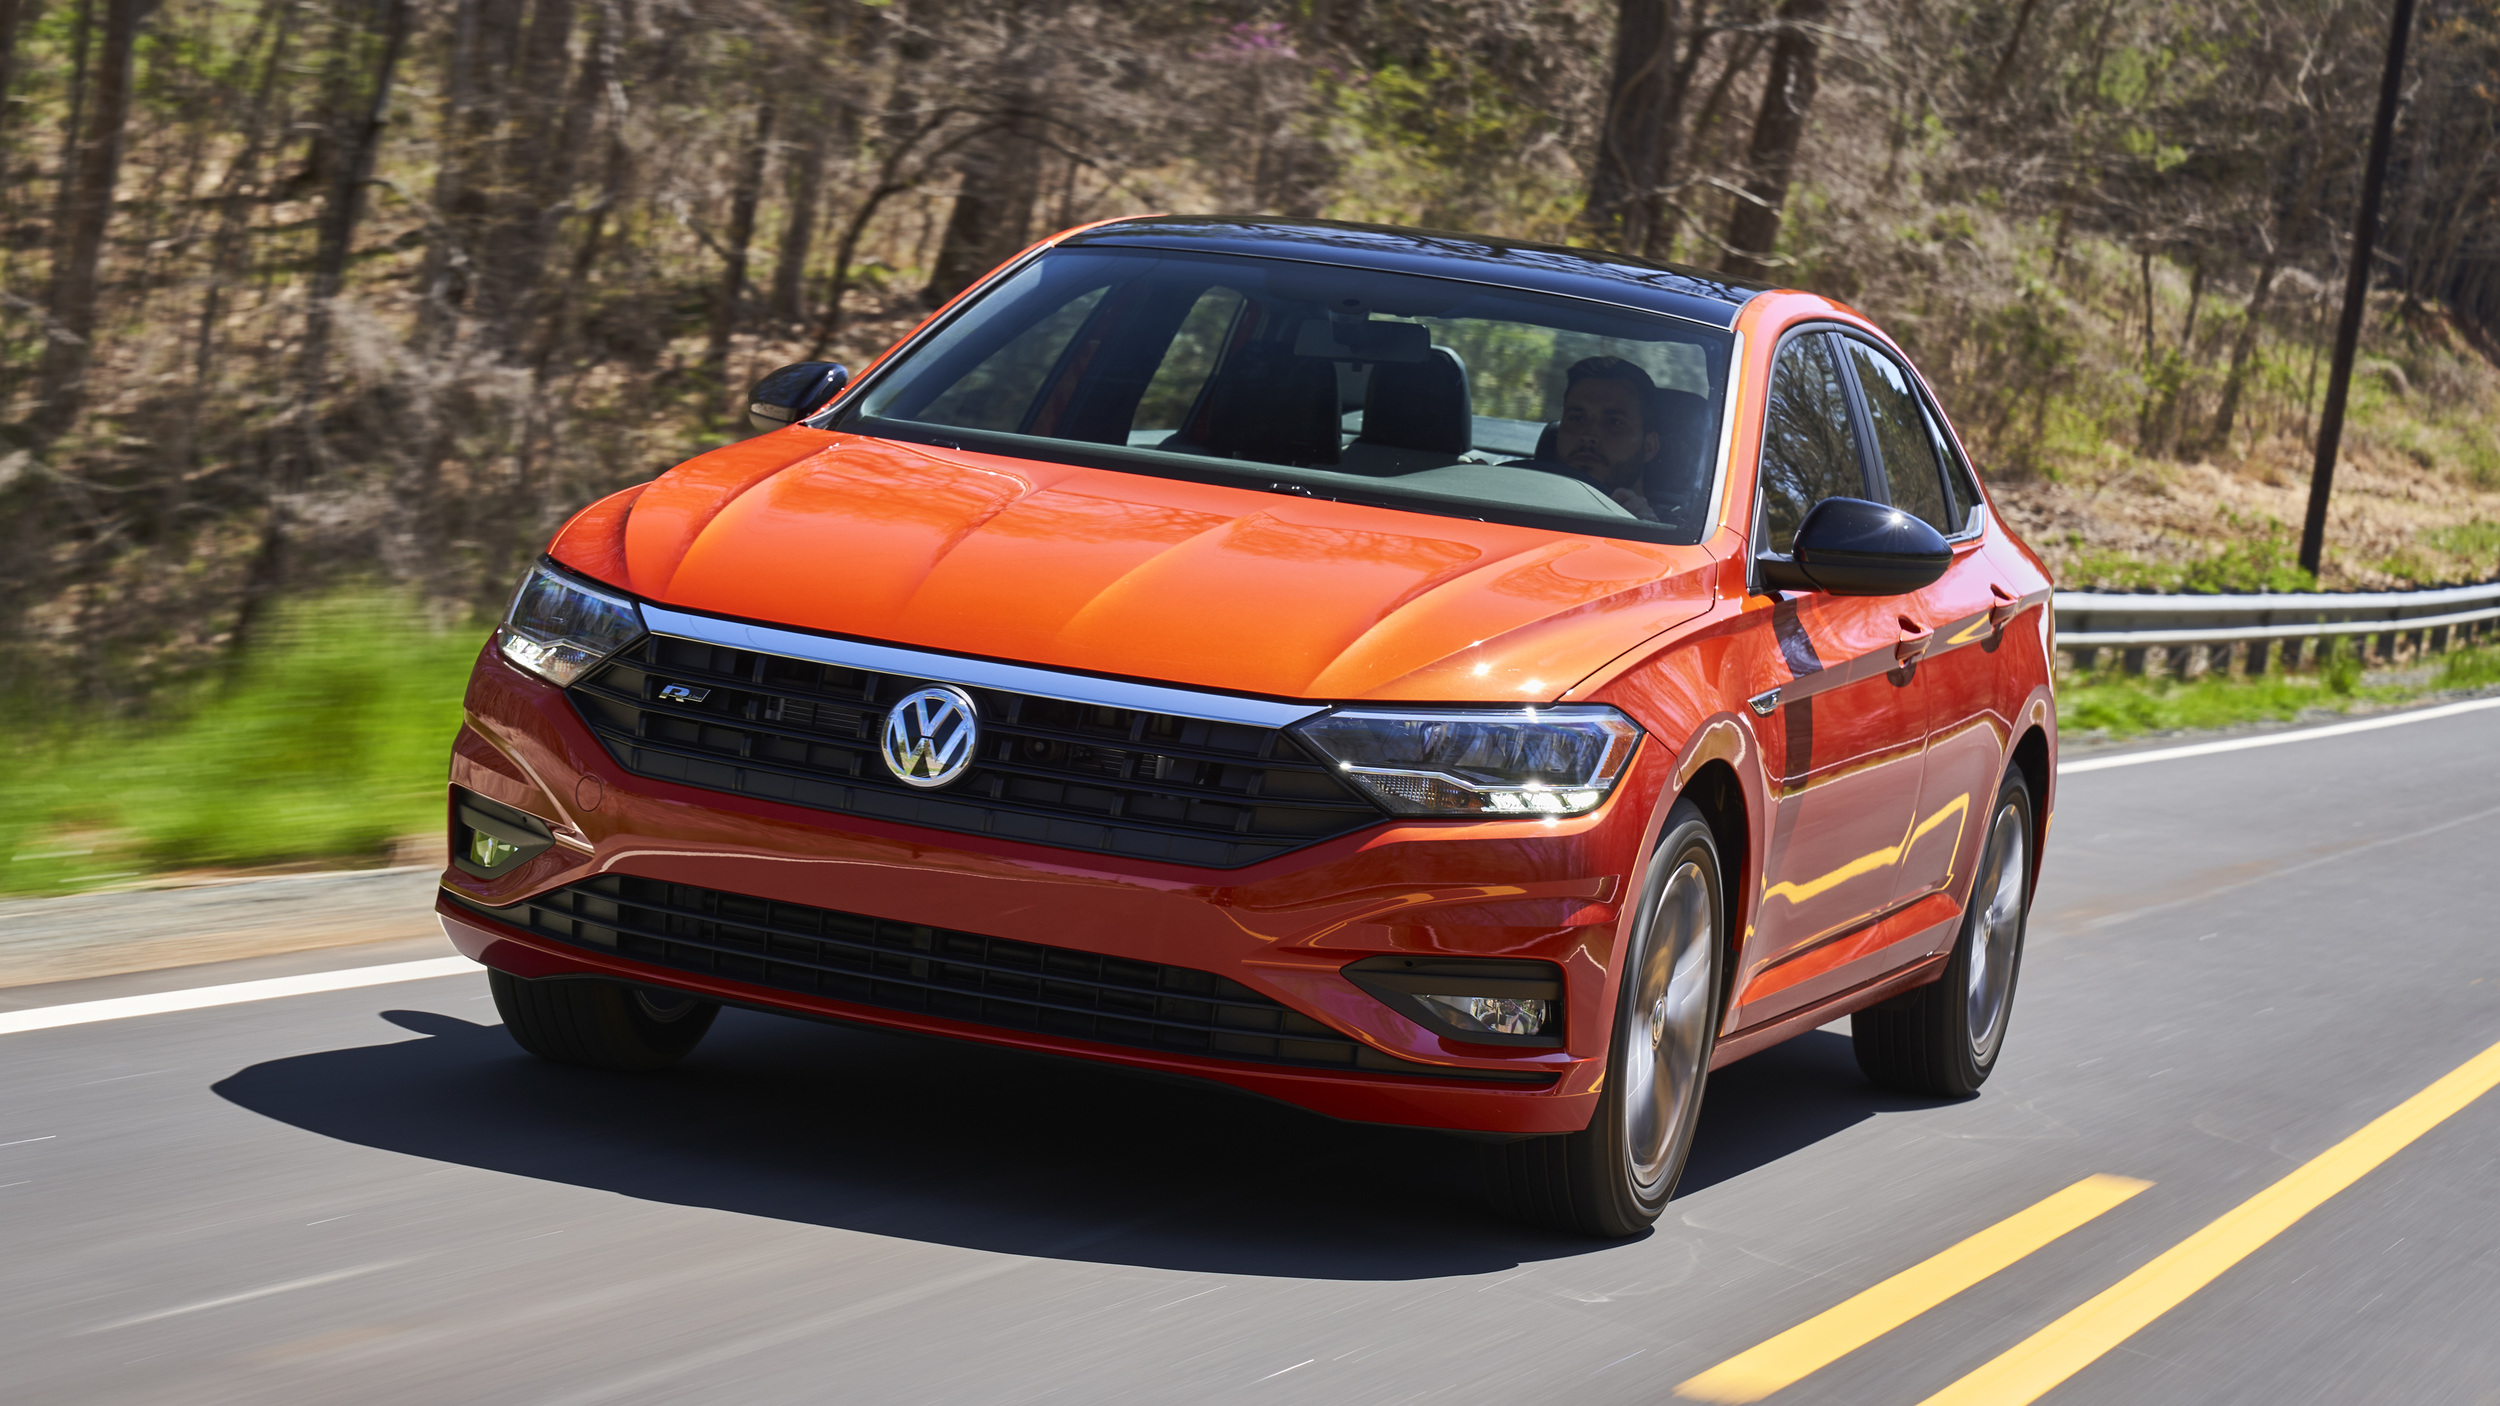 2019 VW Jetta First Drive Review | Autoblog